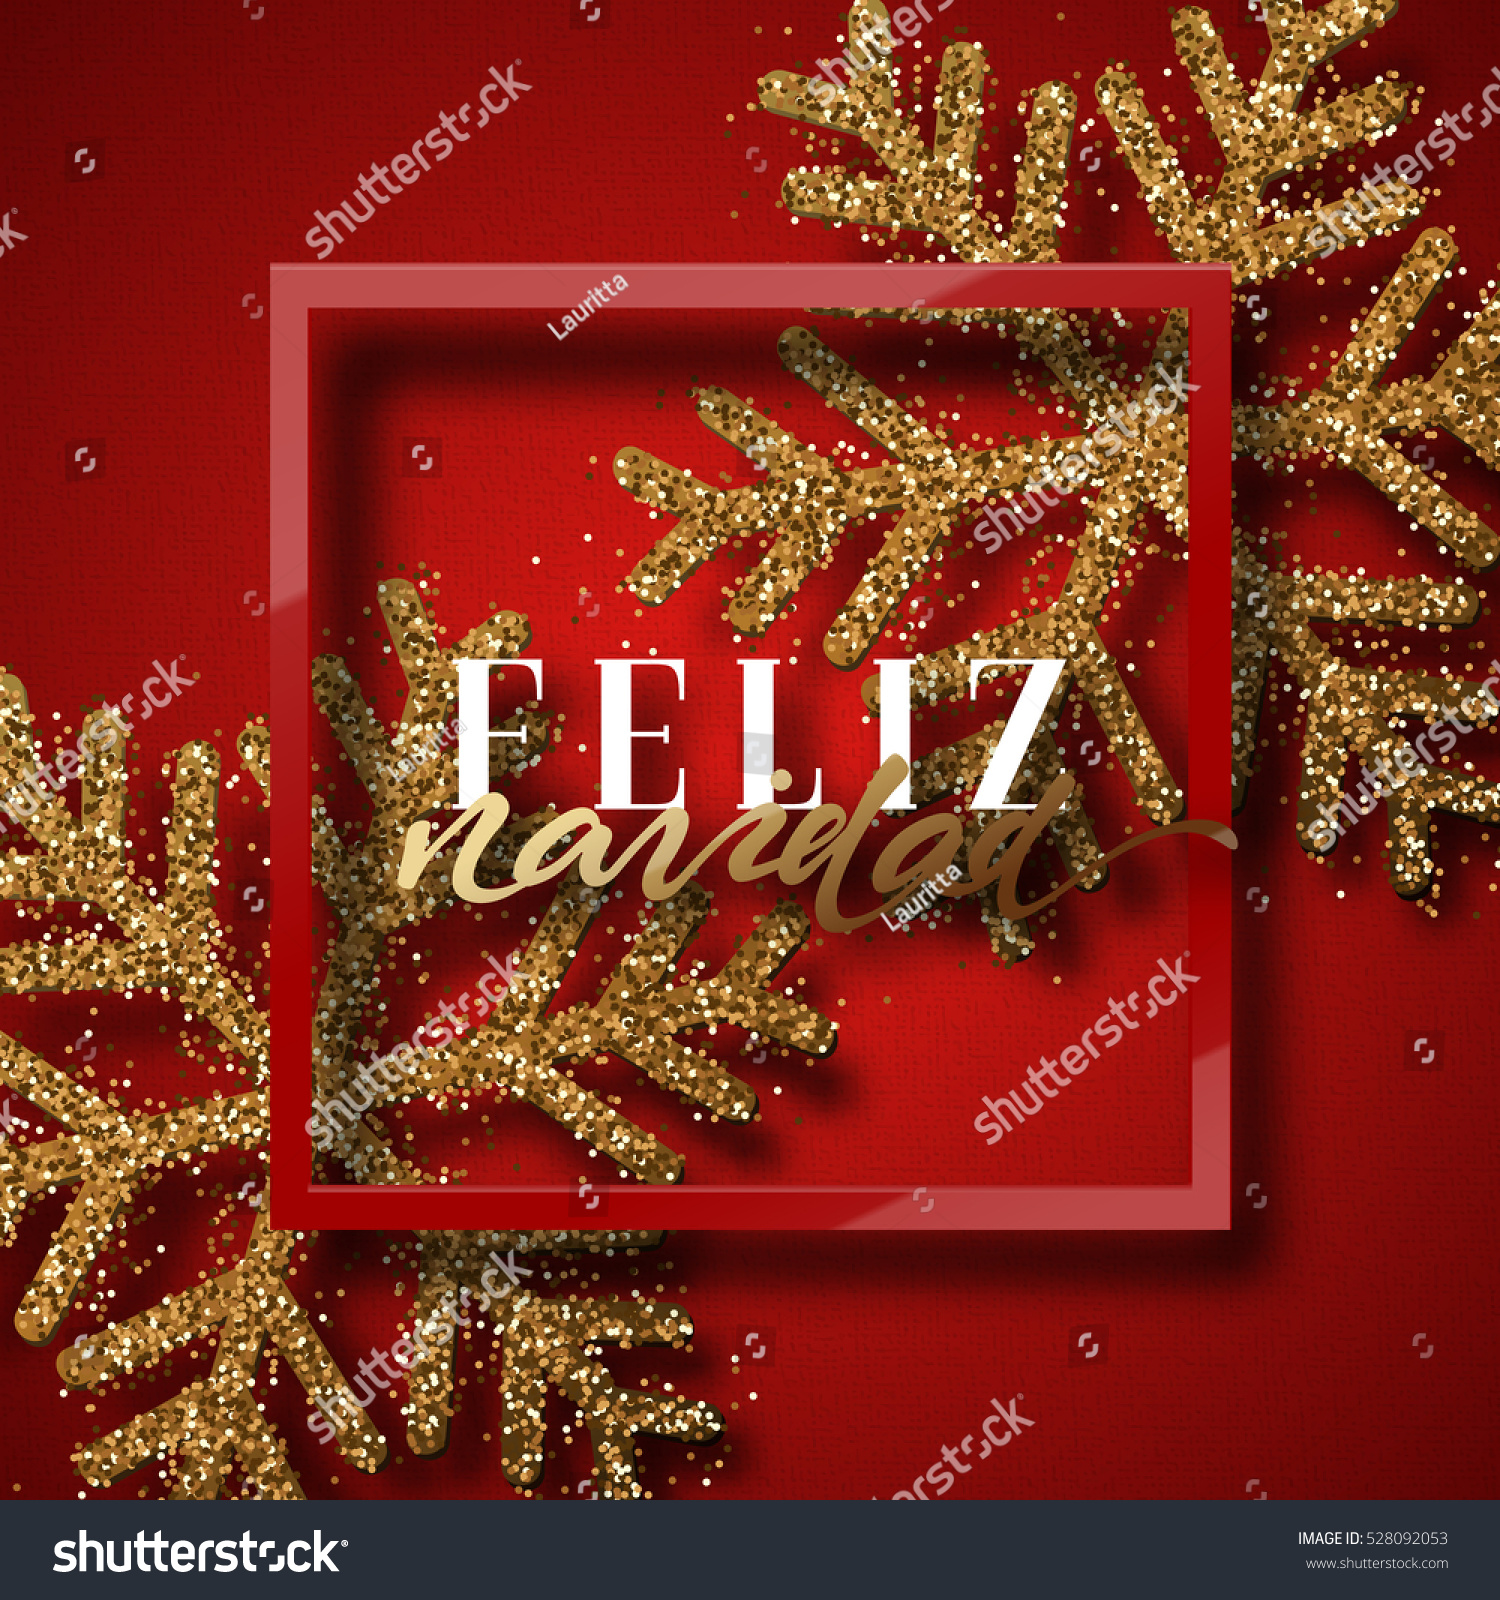 Merry En: Merry Christmas Spanish Inscription Feliz Navidad Stock